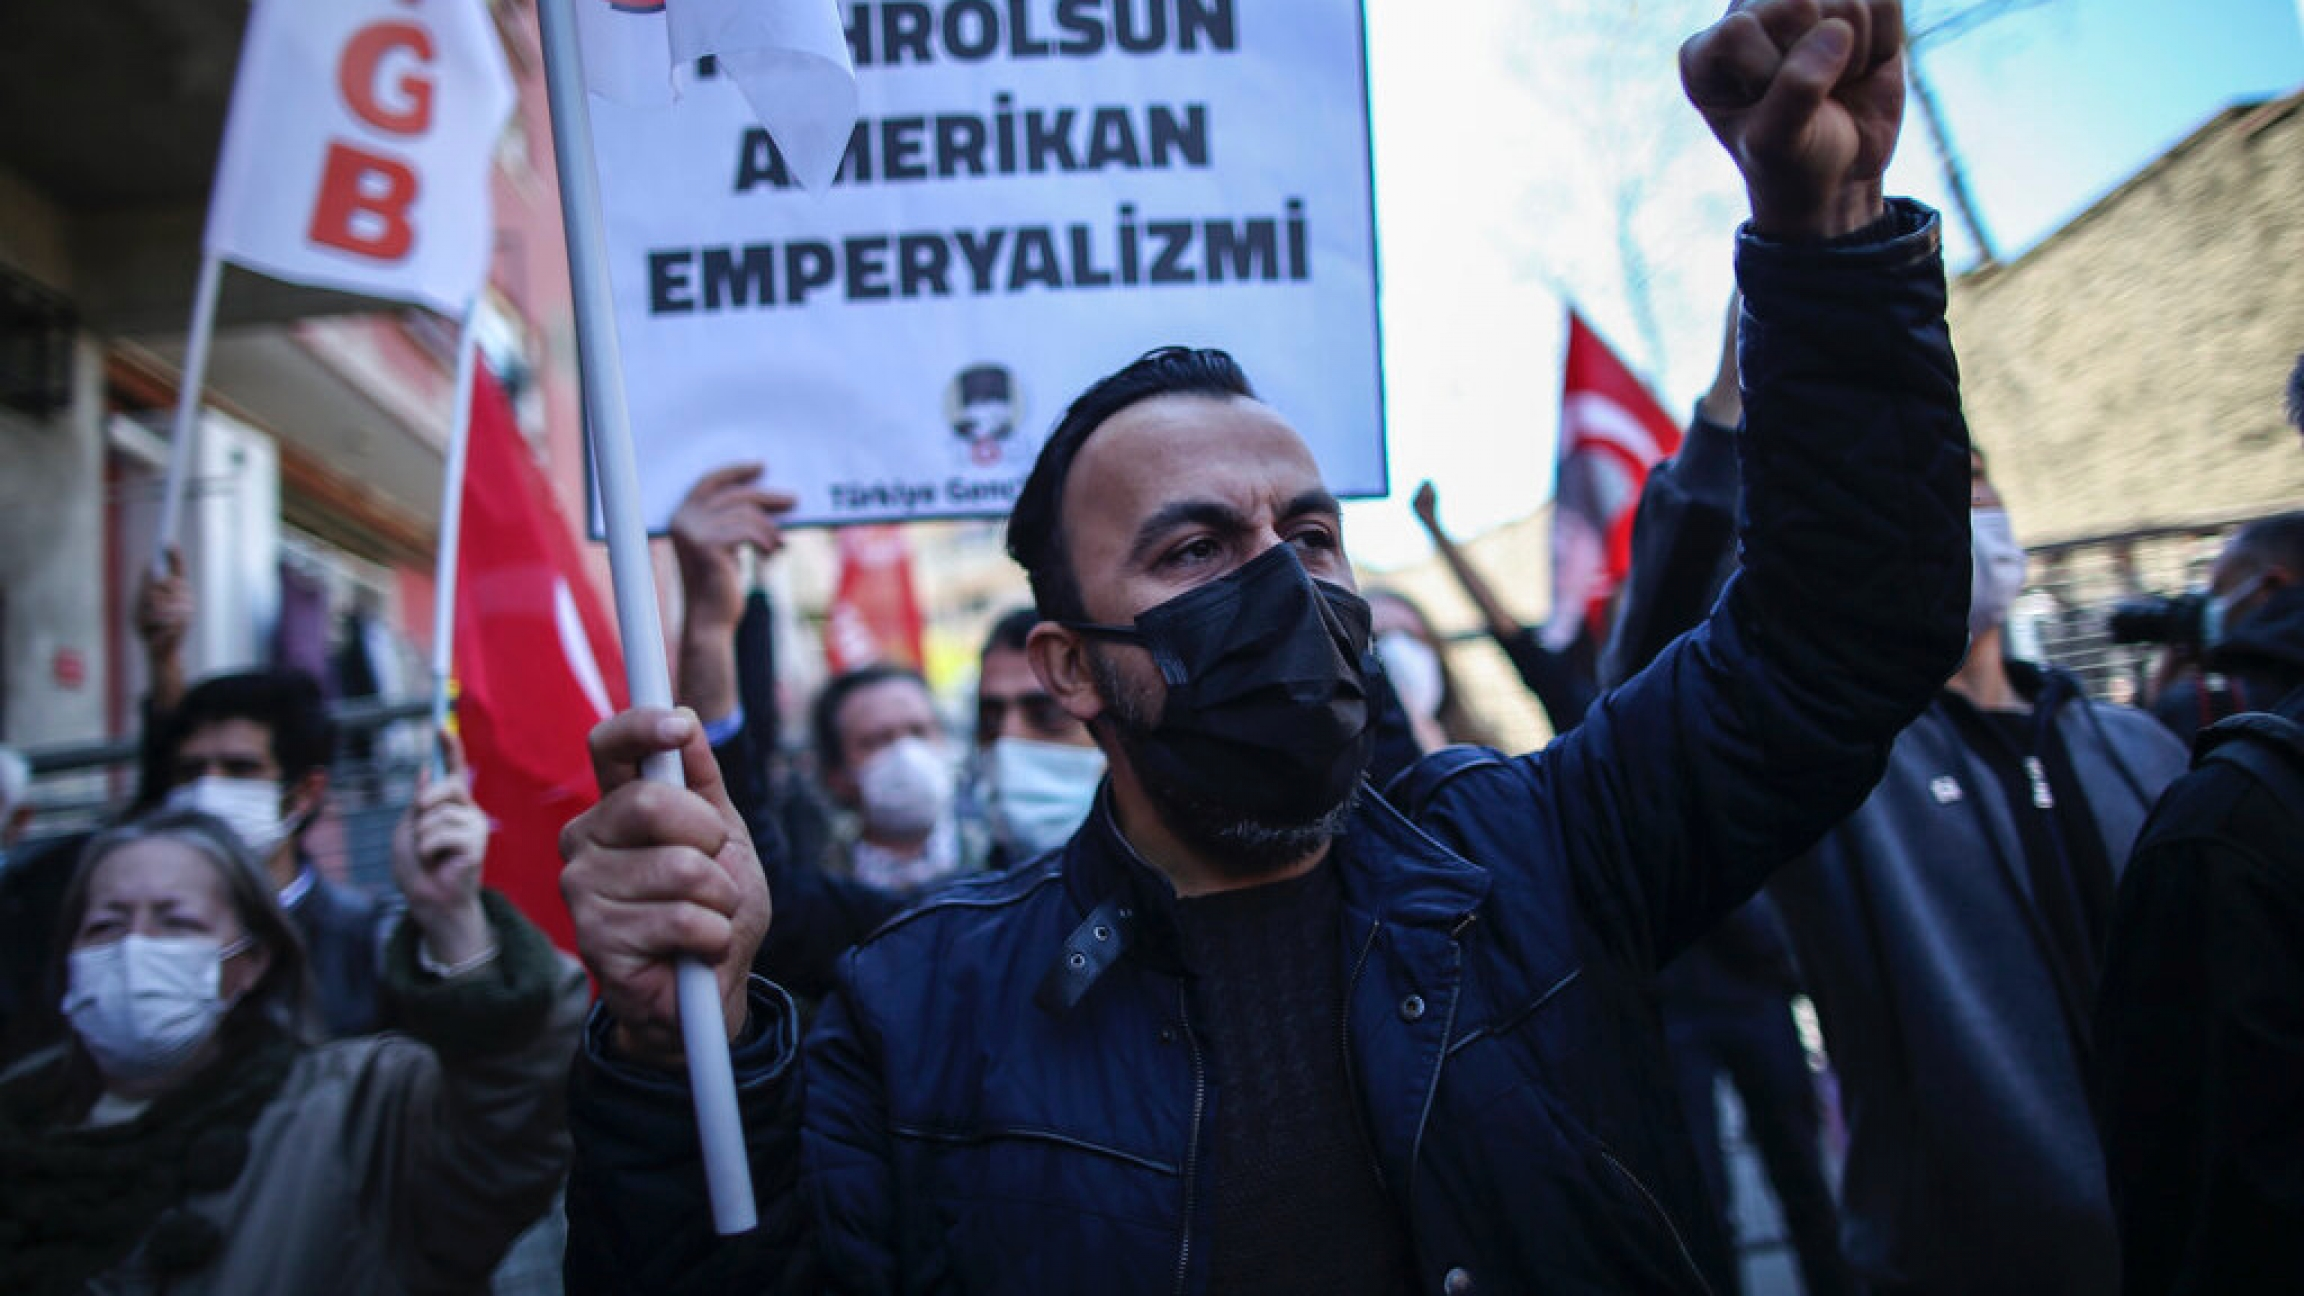 Supporters of the Turkey Youth Union chant slogans during a protest against US President Joe Biden's statement, outside the US consulate in Istanbul, April 26, 2021.